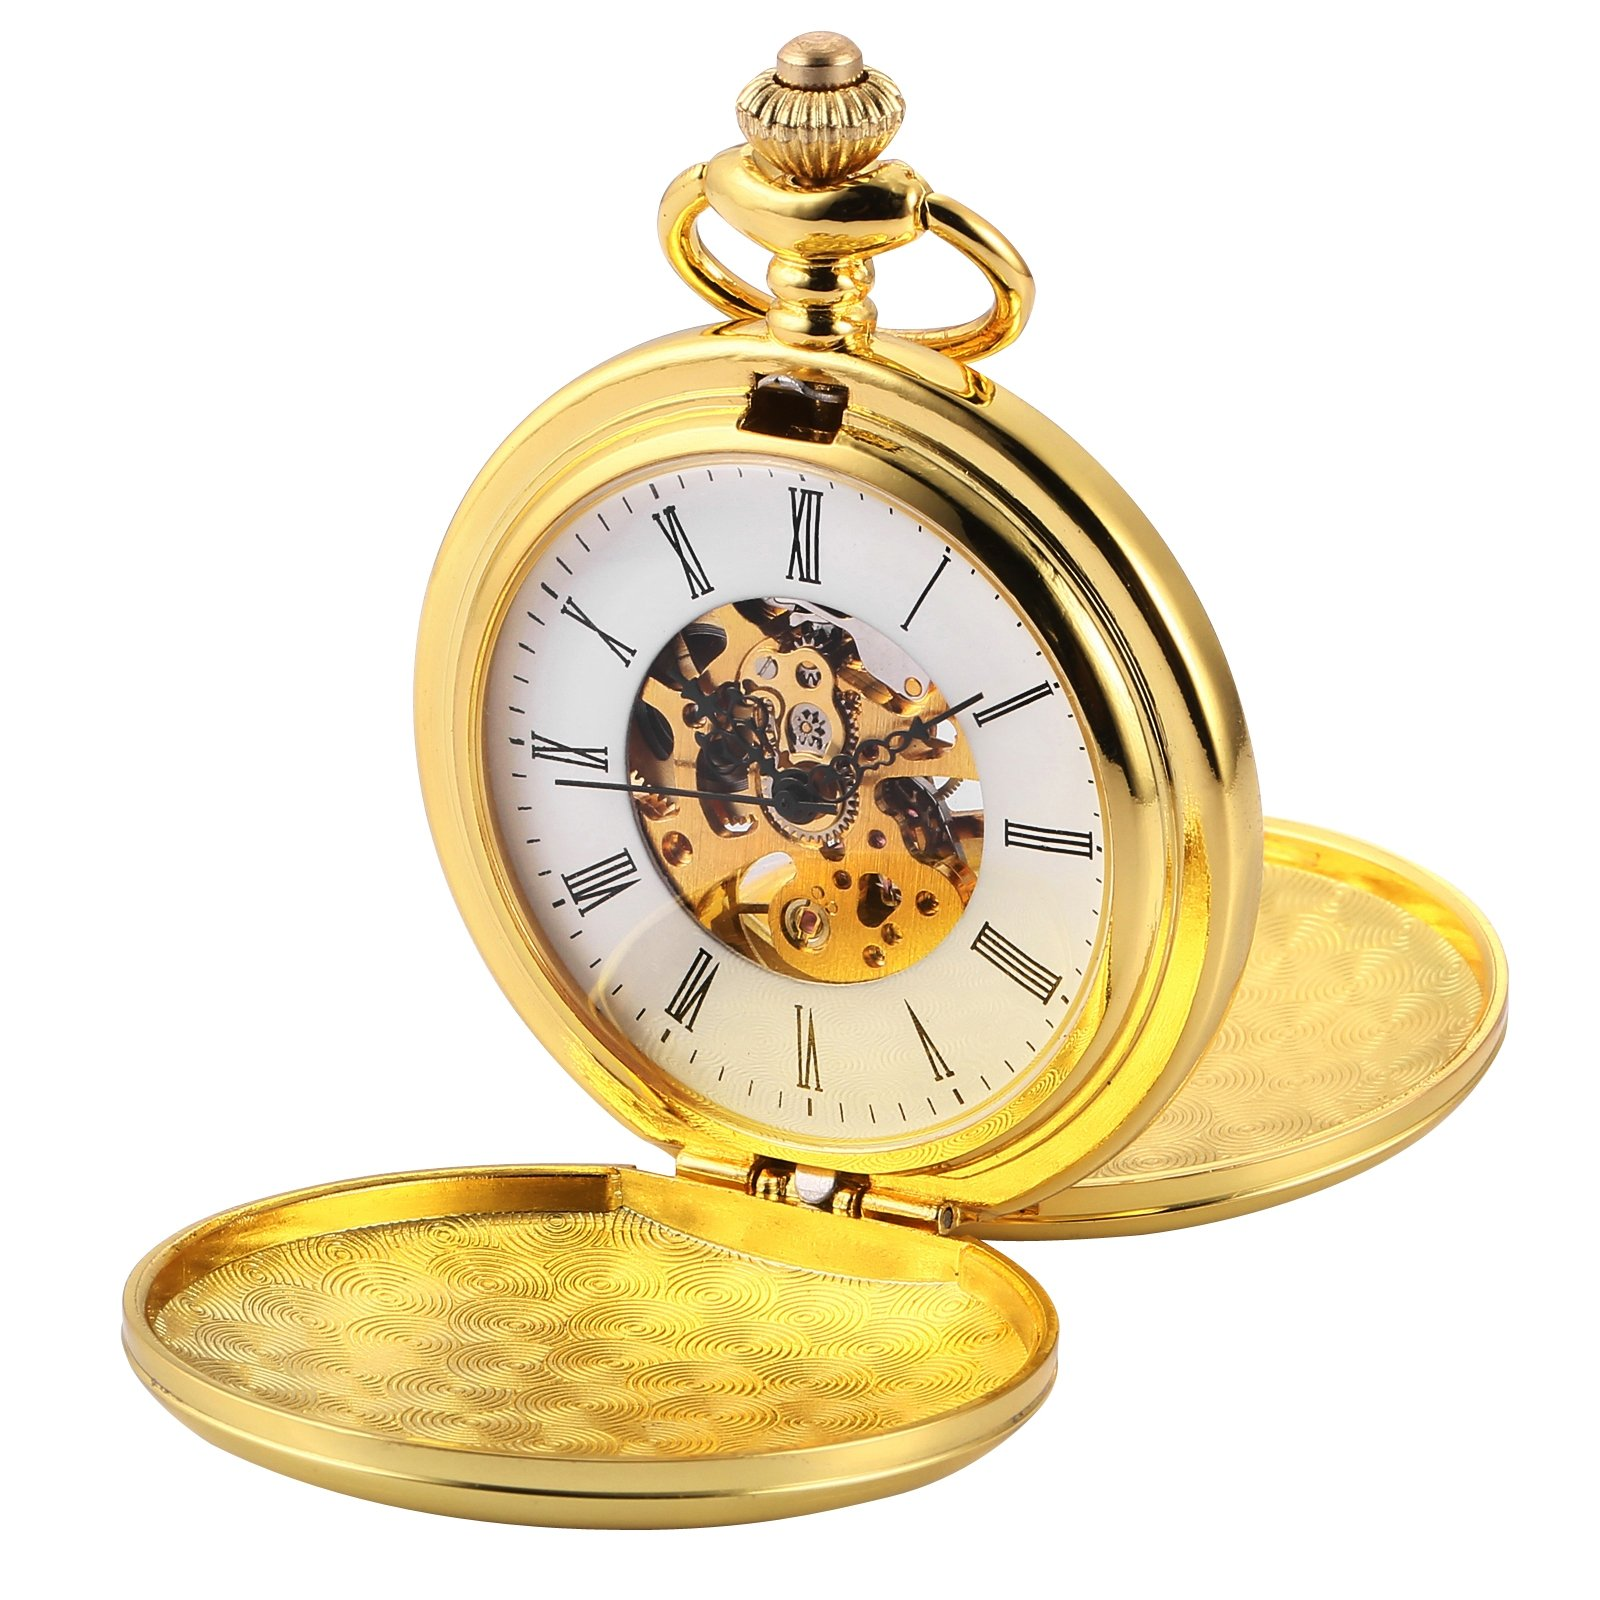 AMPM24 Double Hunter Golden Case Mechanical Pocket Watch WPK226